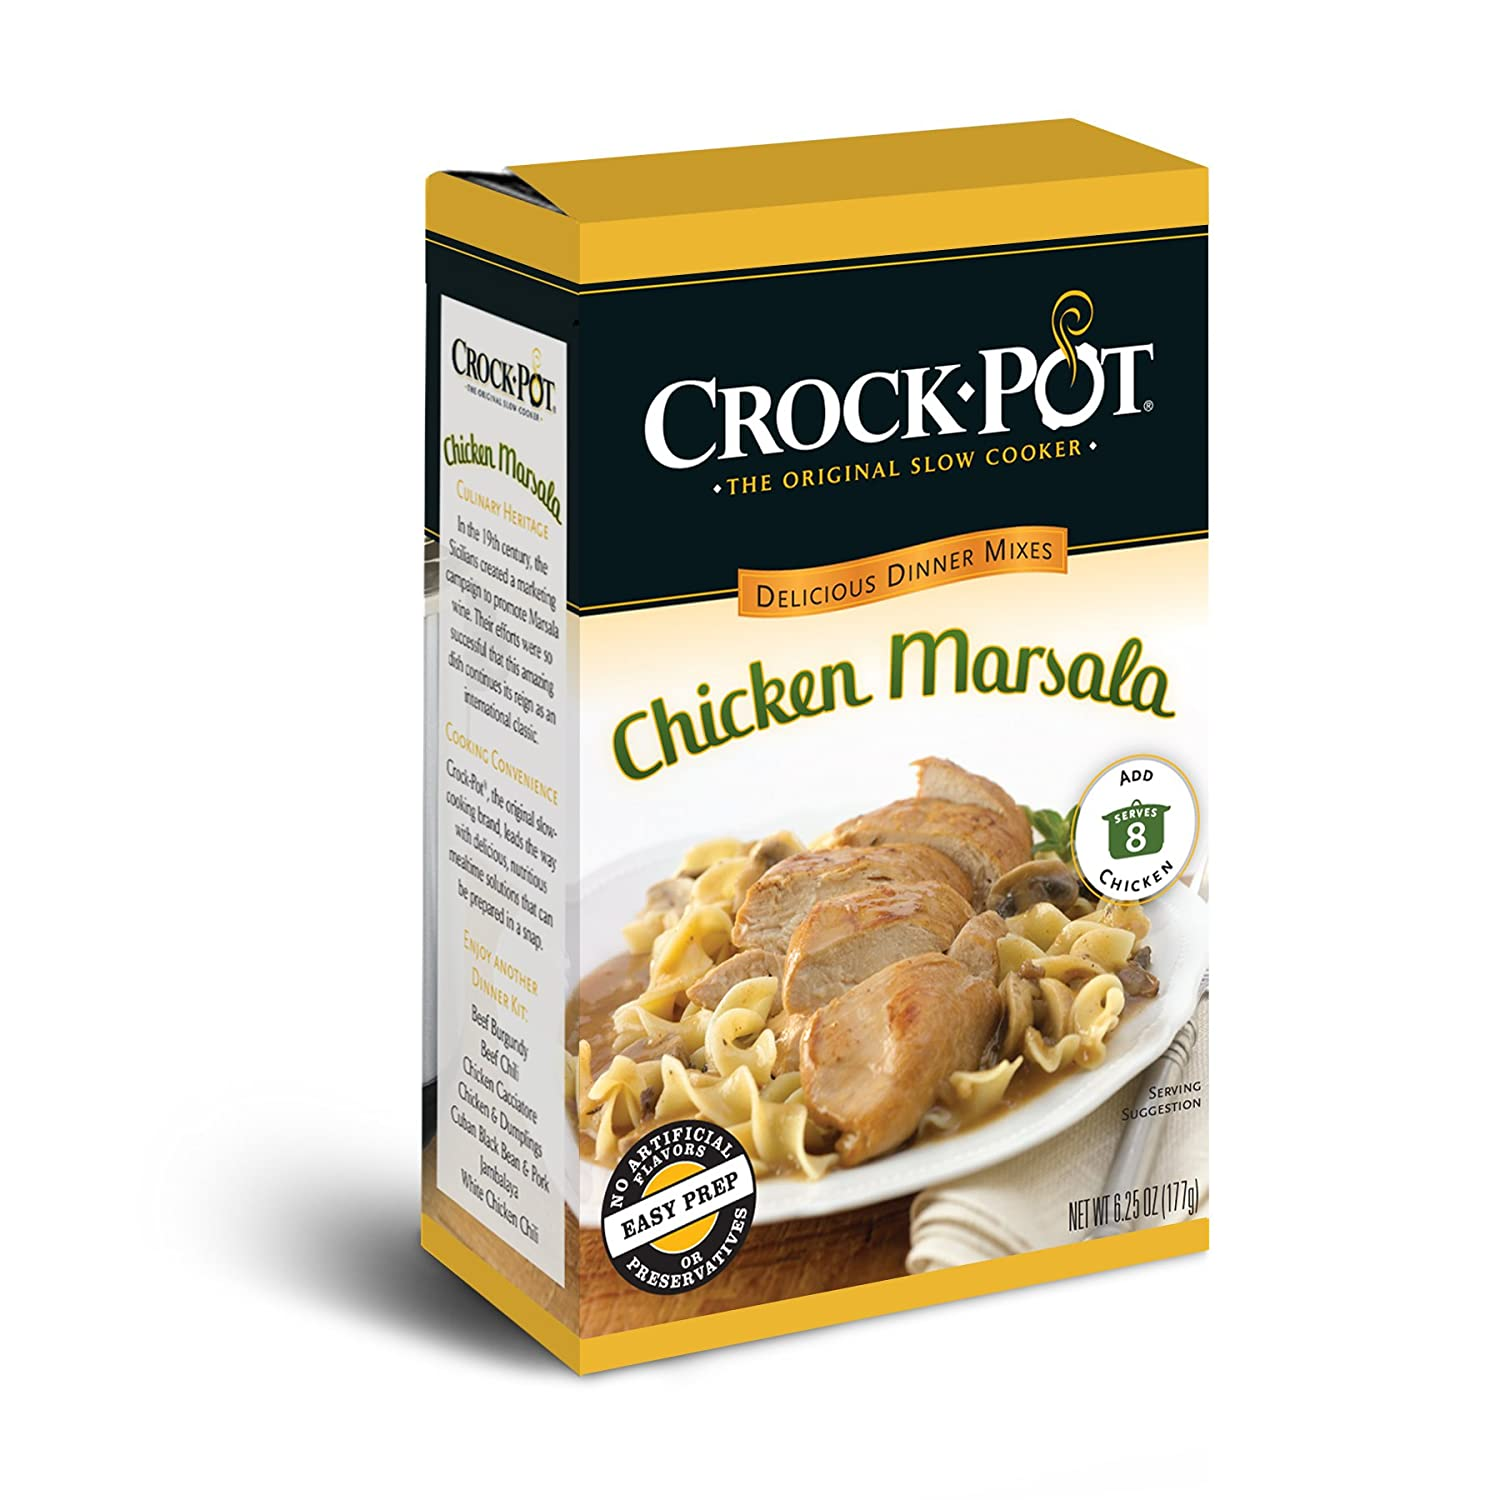 Crock-Pot Delicious Dinners, All Natural Chicken Marsala, Pack of 3